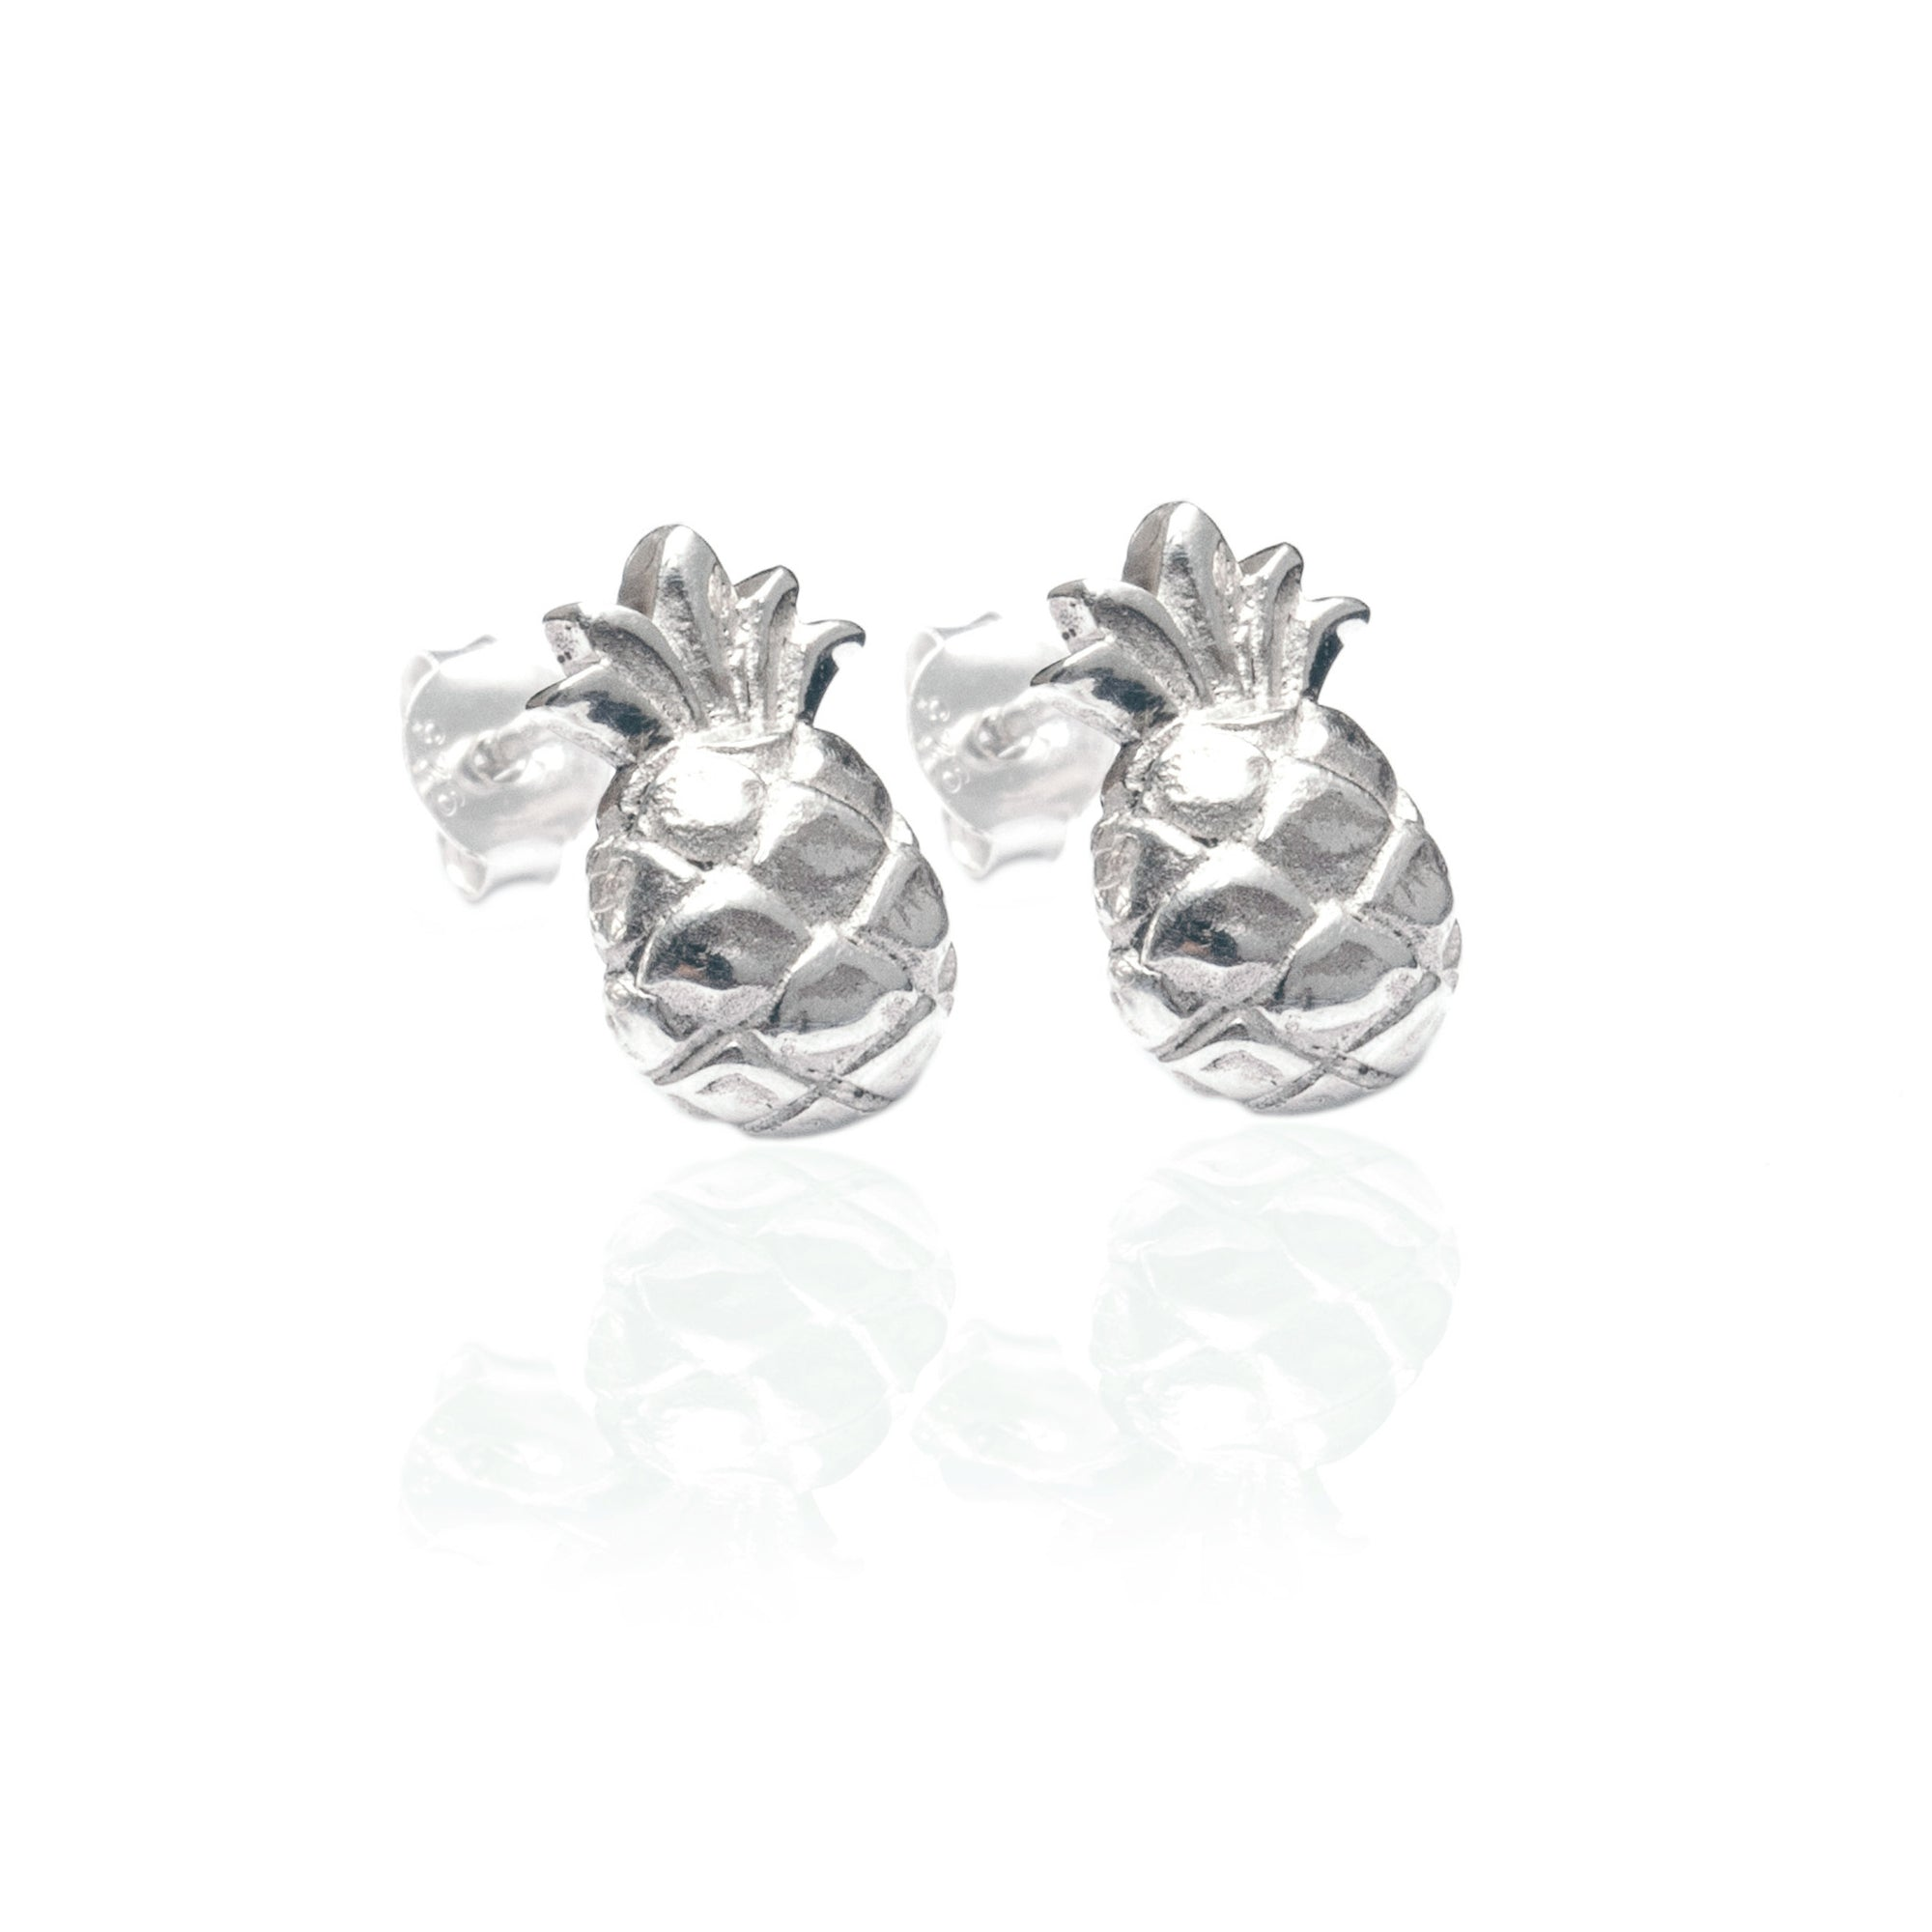 Luna & Rose - Pineapple Earrings Silver